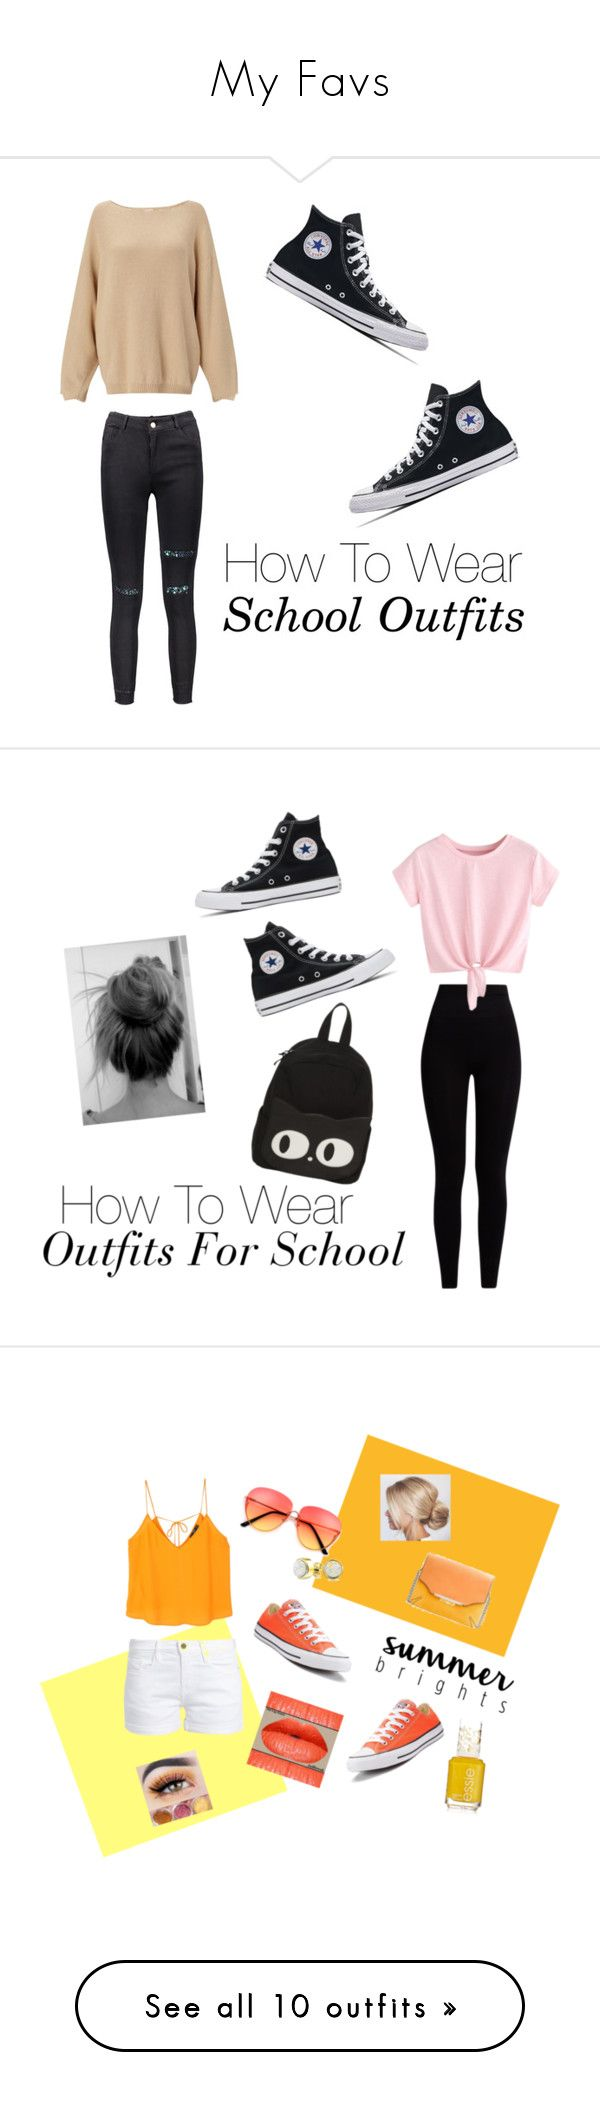 """""""My Favs"""" by gussied-up on Polyvore featuring Pepper & Mayne, Converse, MANGO, Frame, Bling Jewelry, rag & bone, NIKE, BKE, Topshop and adidas"""